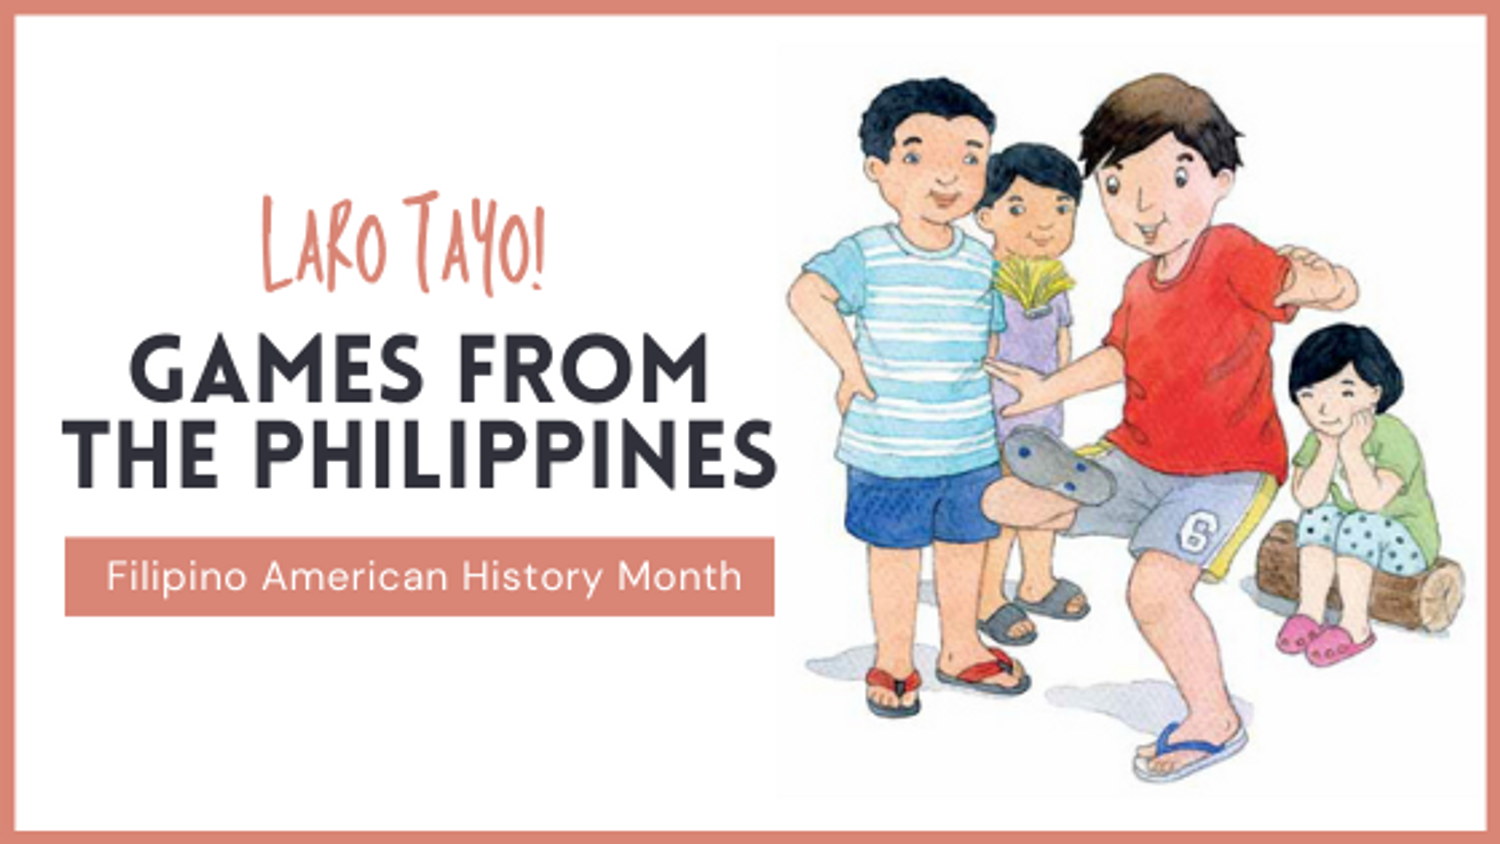 Laro Tayo: Games from the Philippines